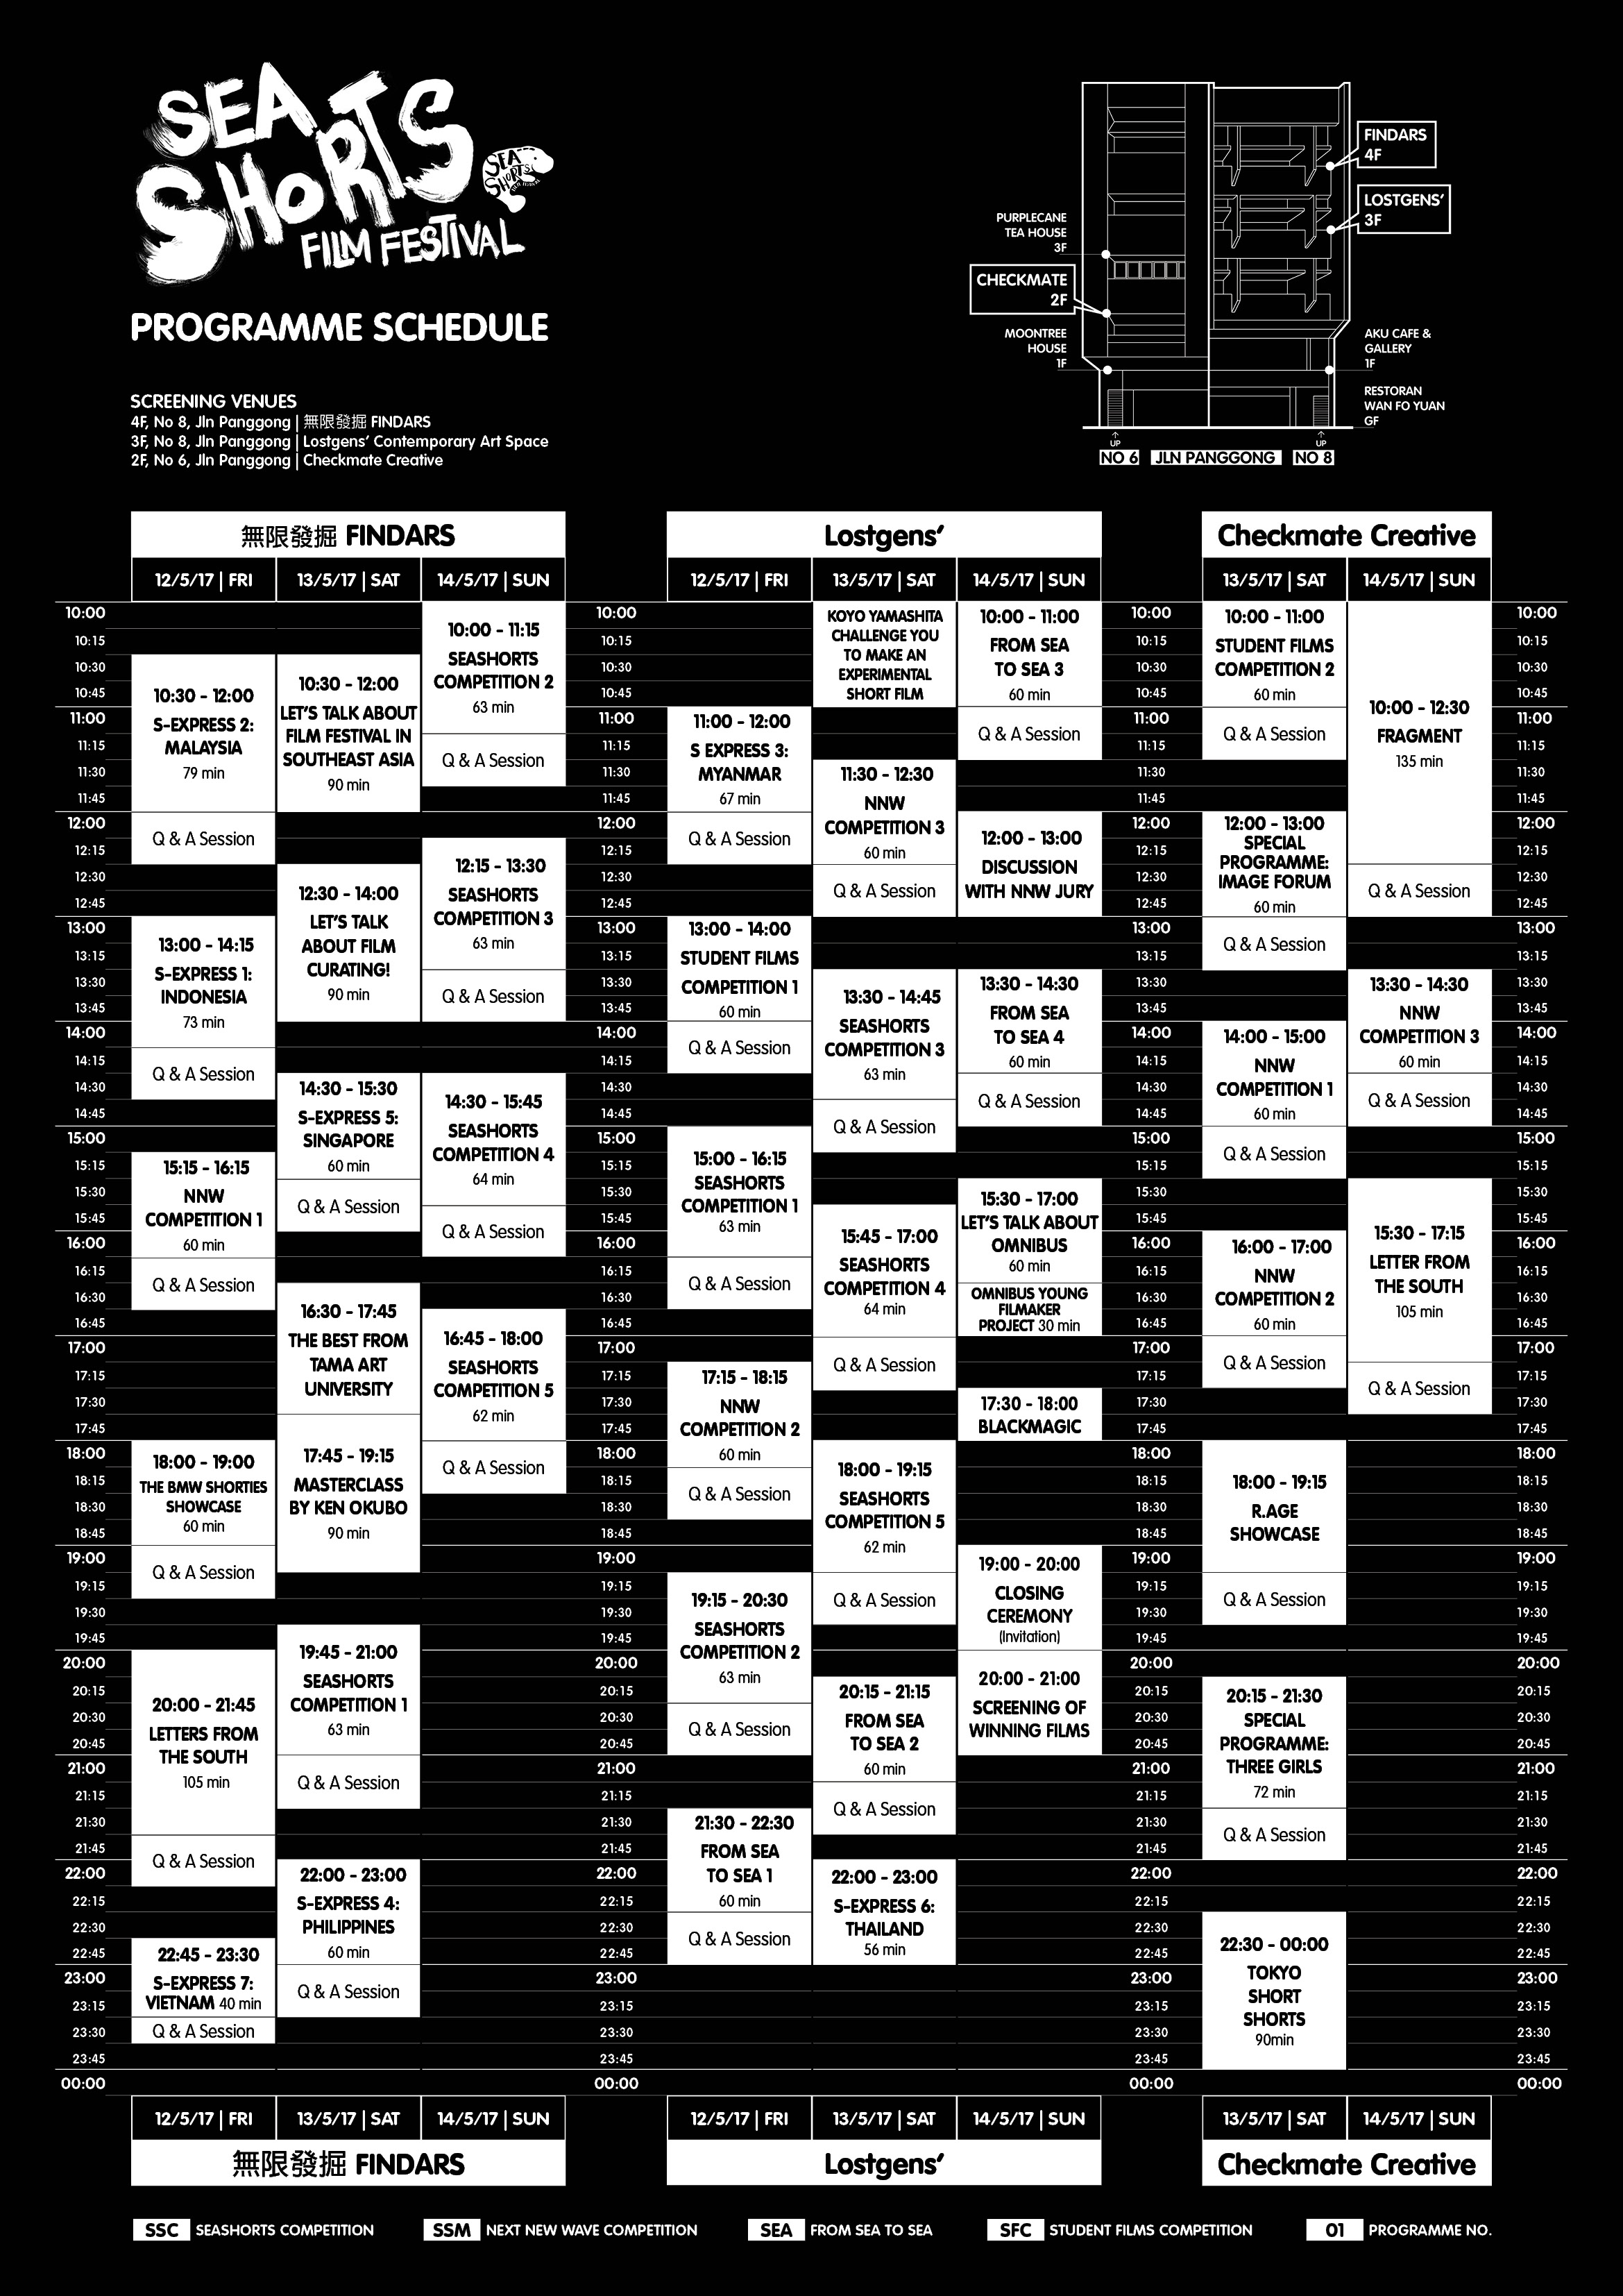 Schedule According to Venue